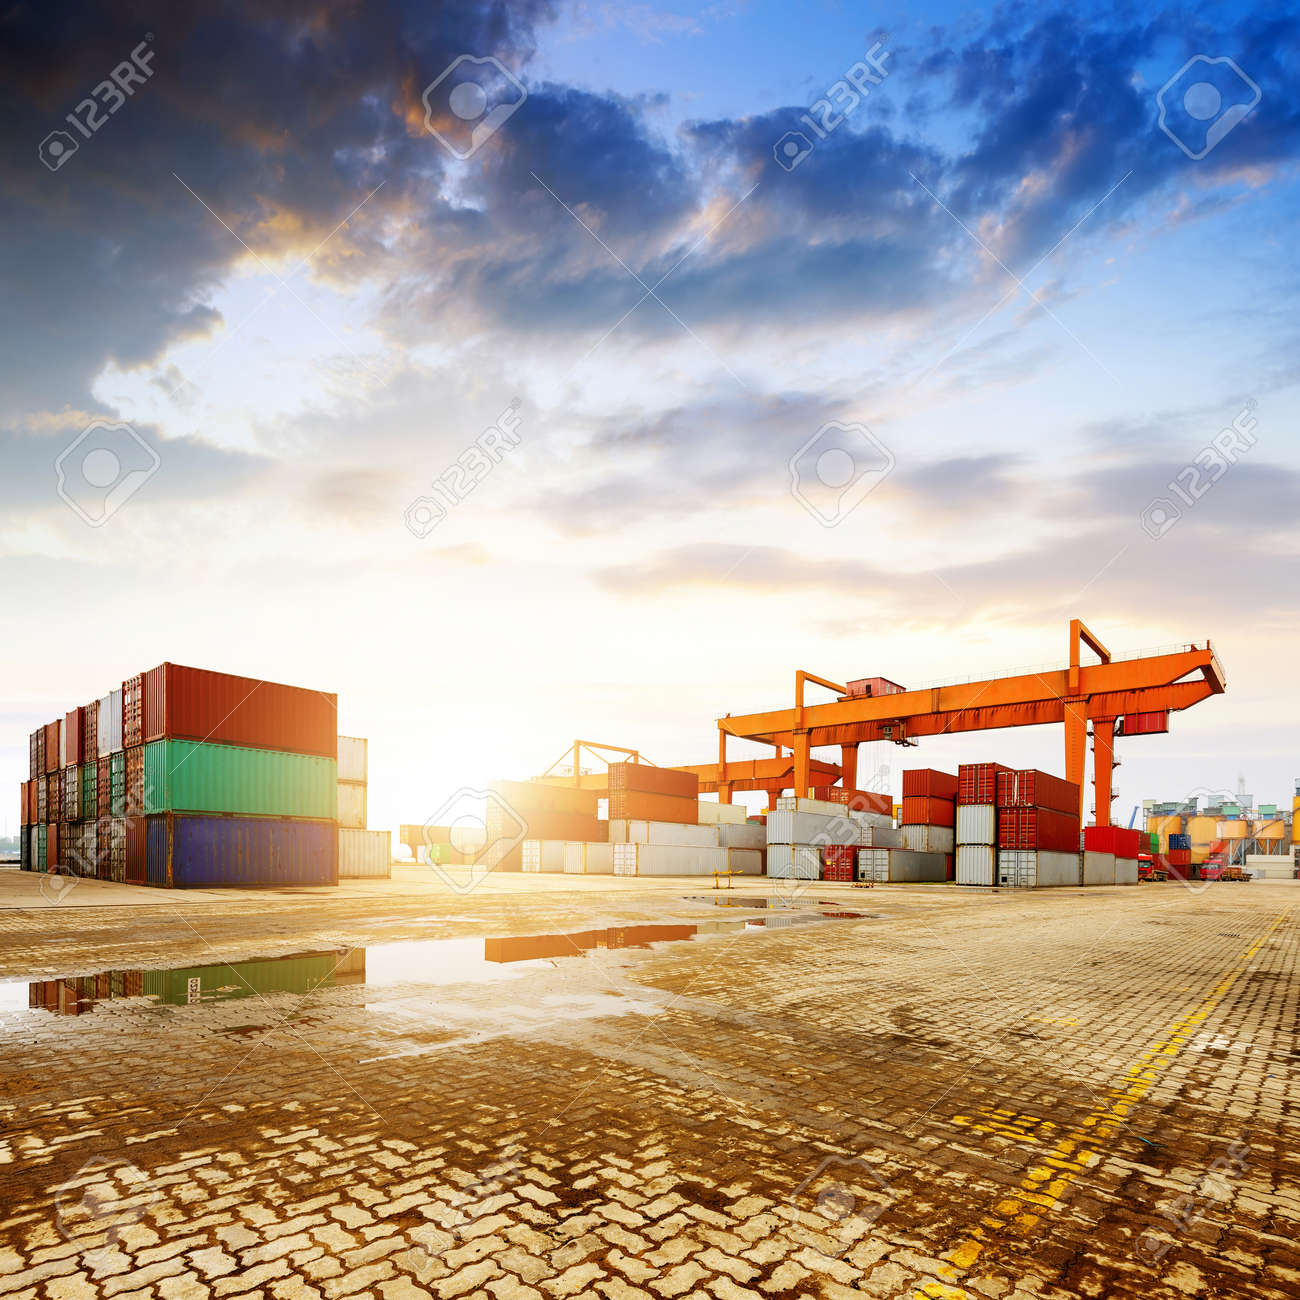 When the container terminal at dusk, work cranes and forklift. Standard-Bild - 40820759